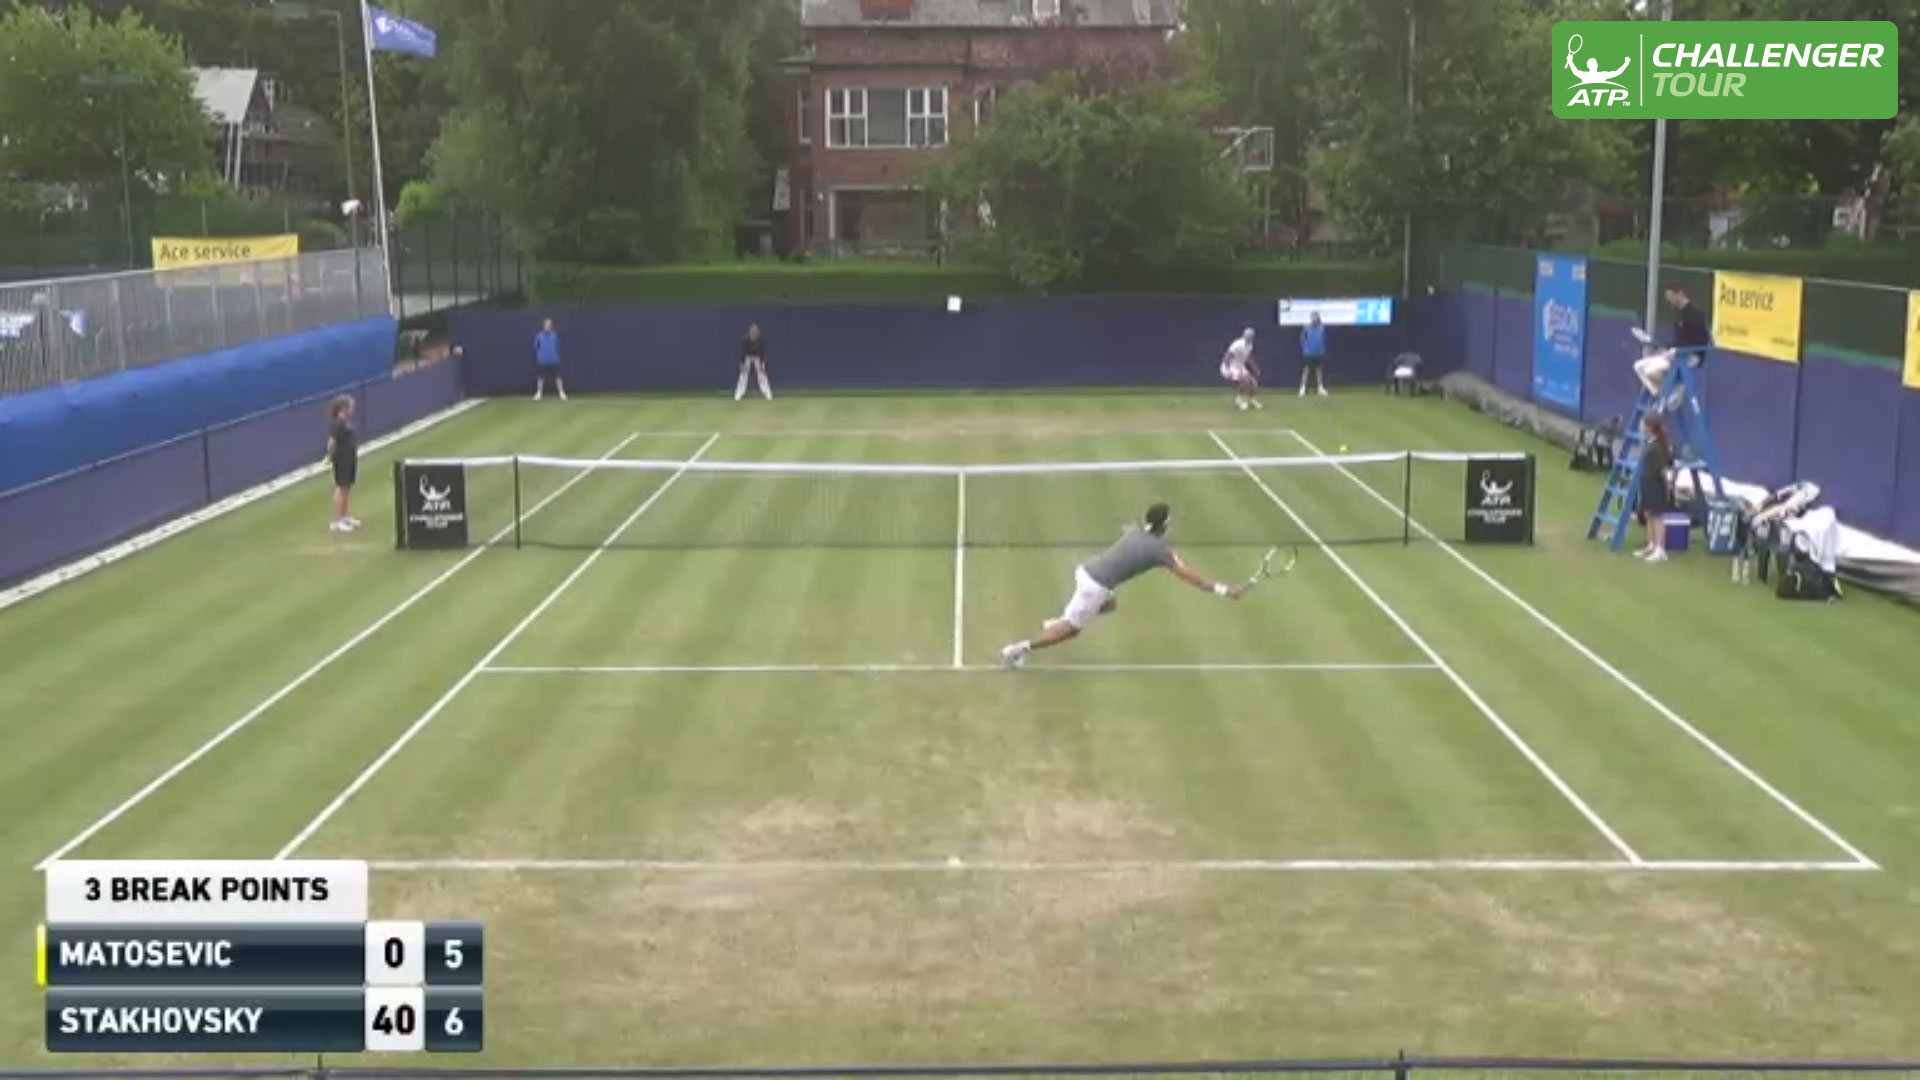 Sergiy Stakhovsky's dive volley earned hot shot honours on Tuesday at the ATP Challenger Tour event in Manchester, England.